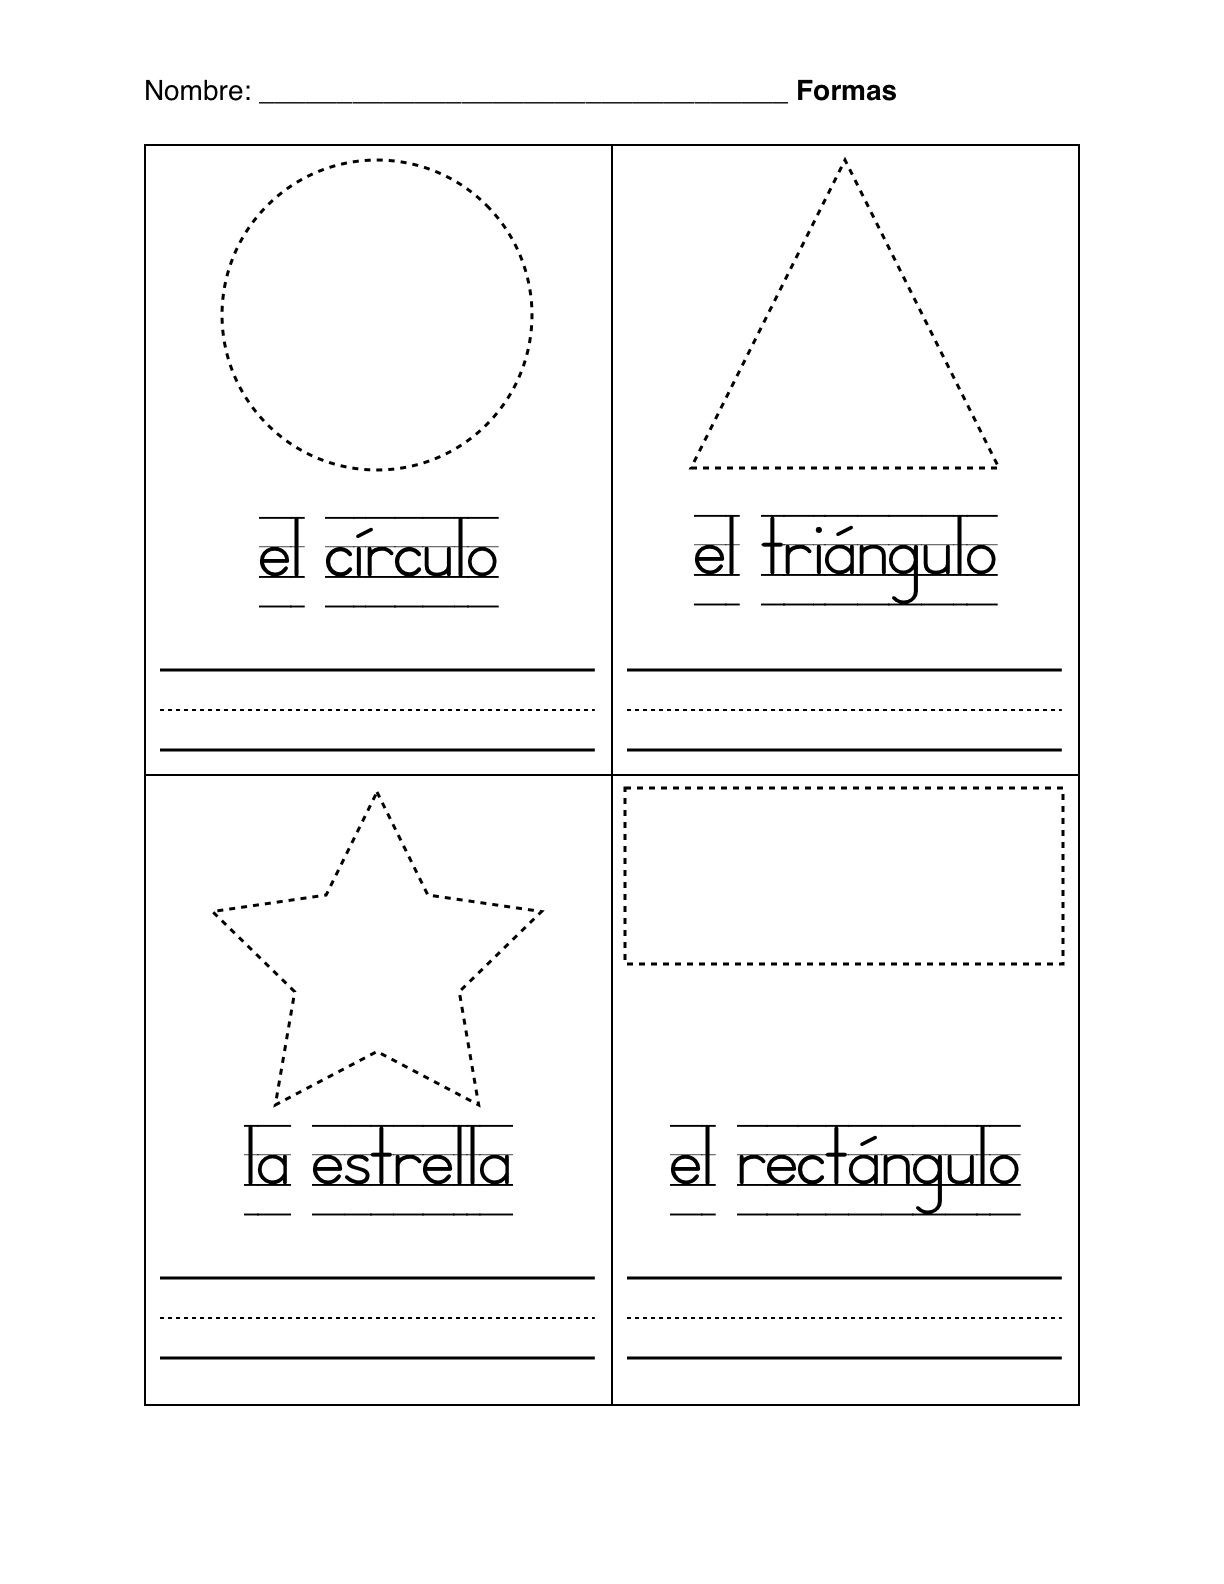 Free Worksheet Beginners Spanish Worksheets greetings for kids worksheet free esl printable worksheets made spanish kindergarten basic shapes in formas basicas worksheet